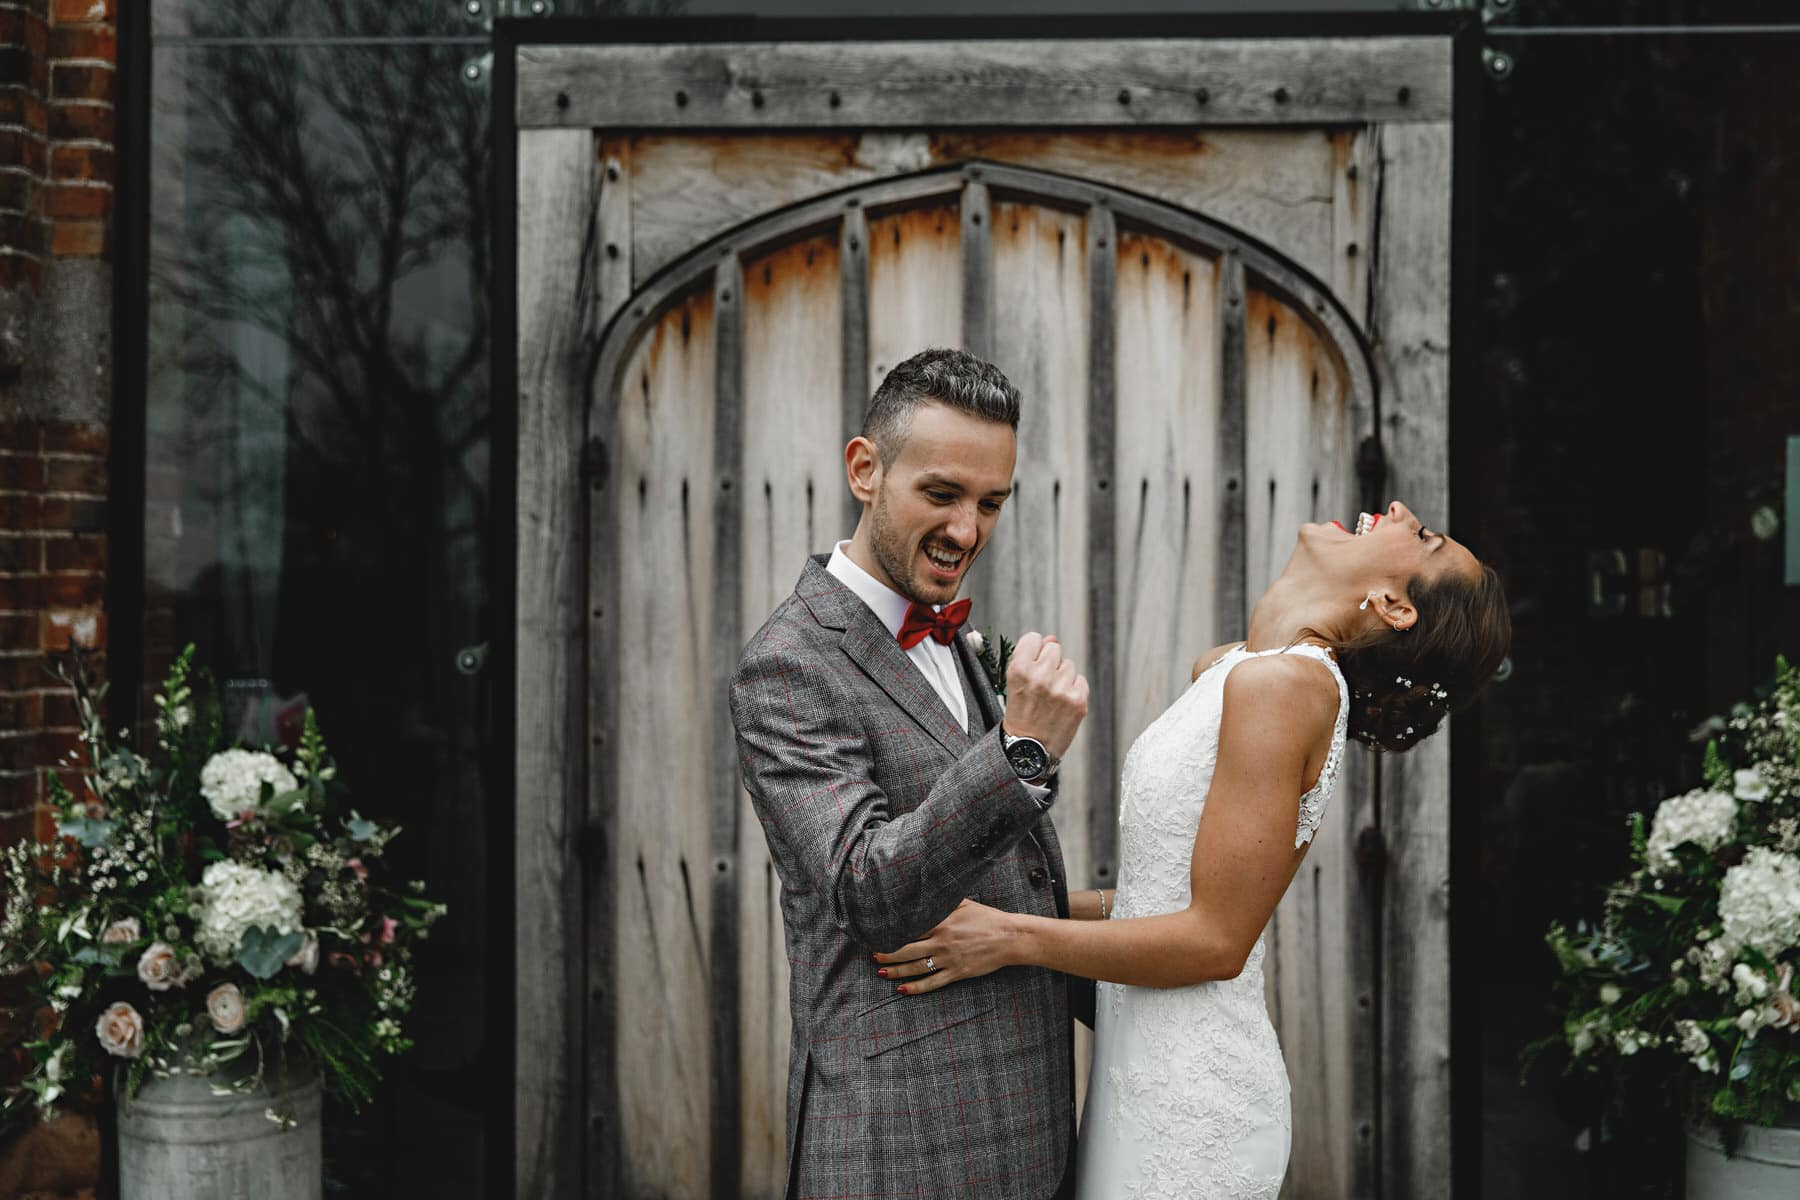 the bride and groom laughing outside the wooden doors at Shustoke Barns in Warwickshire